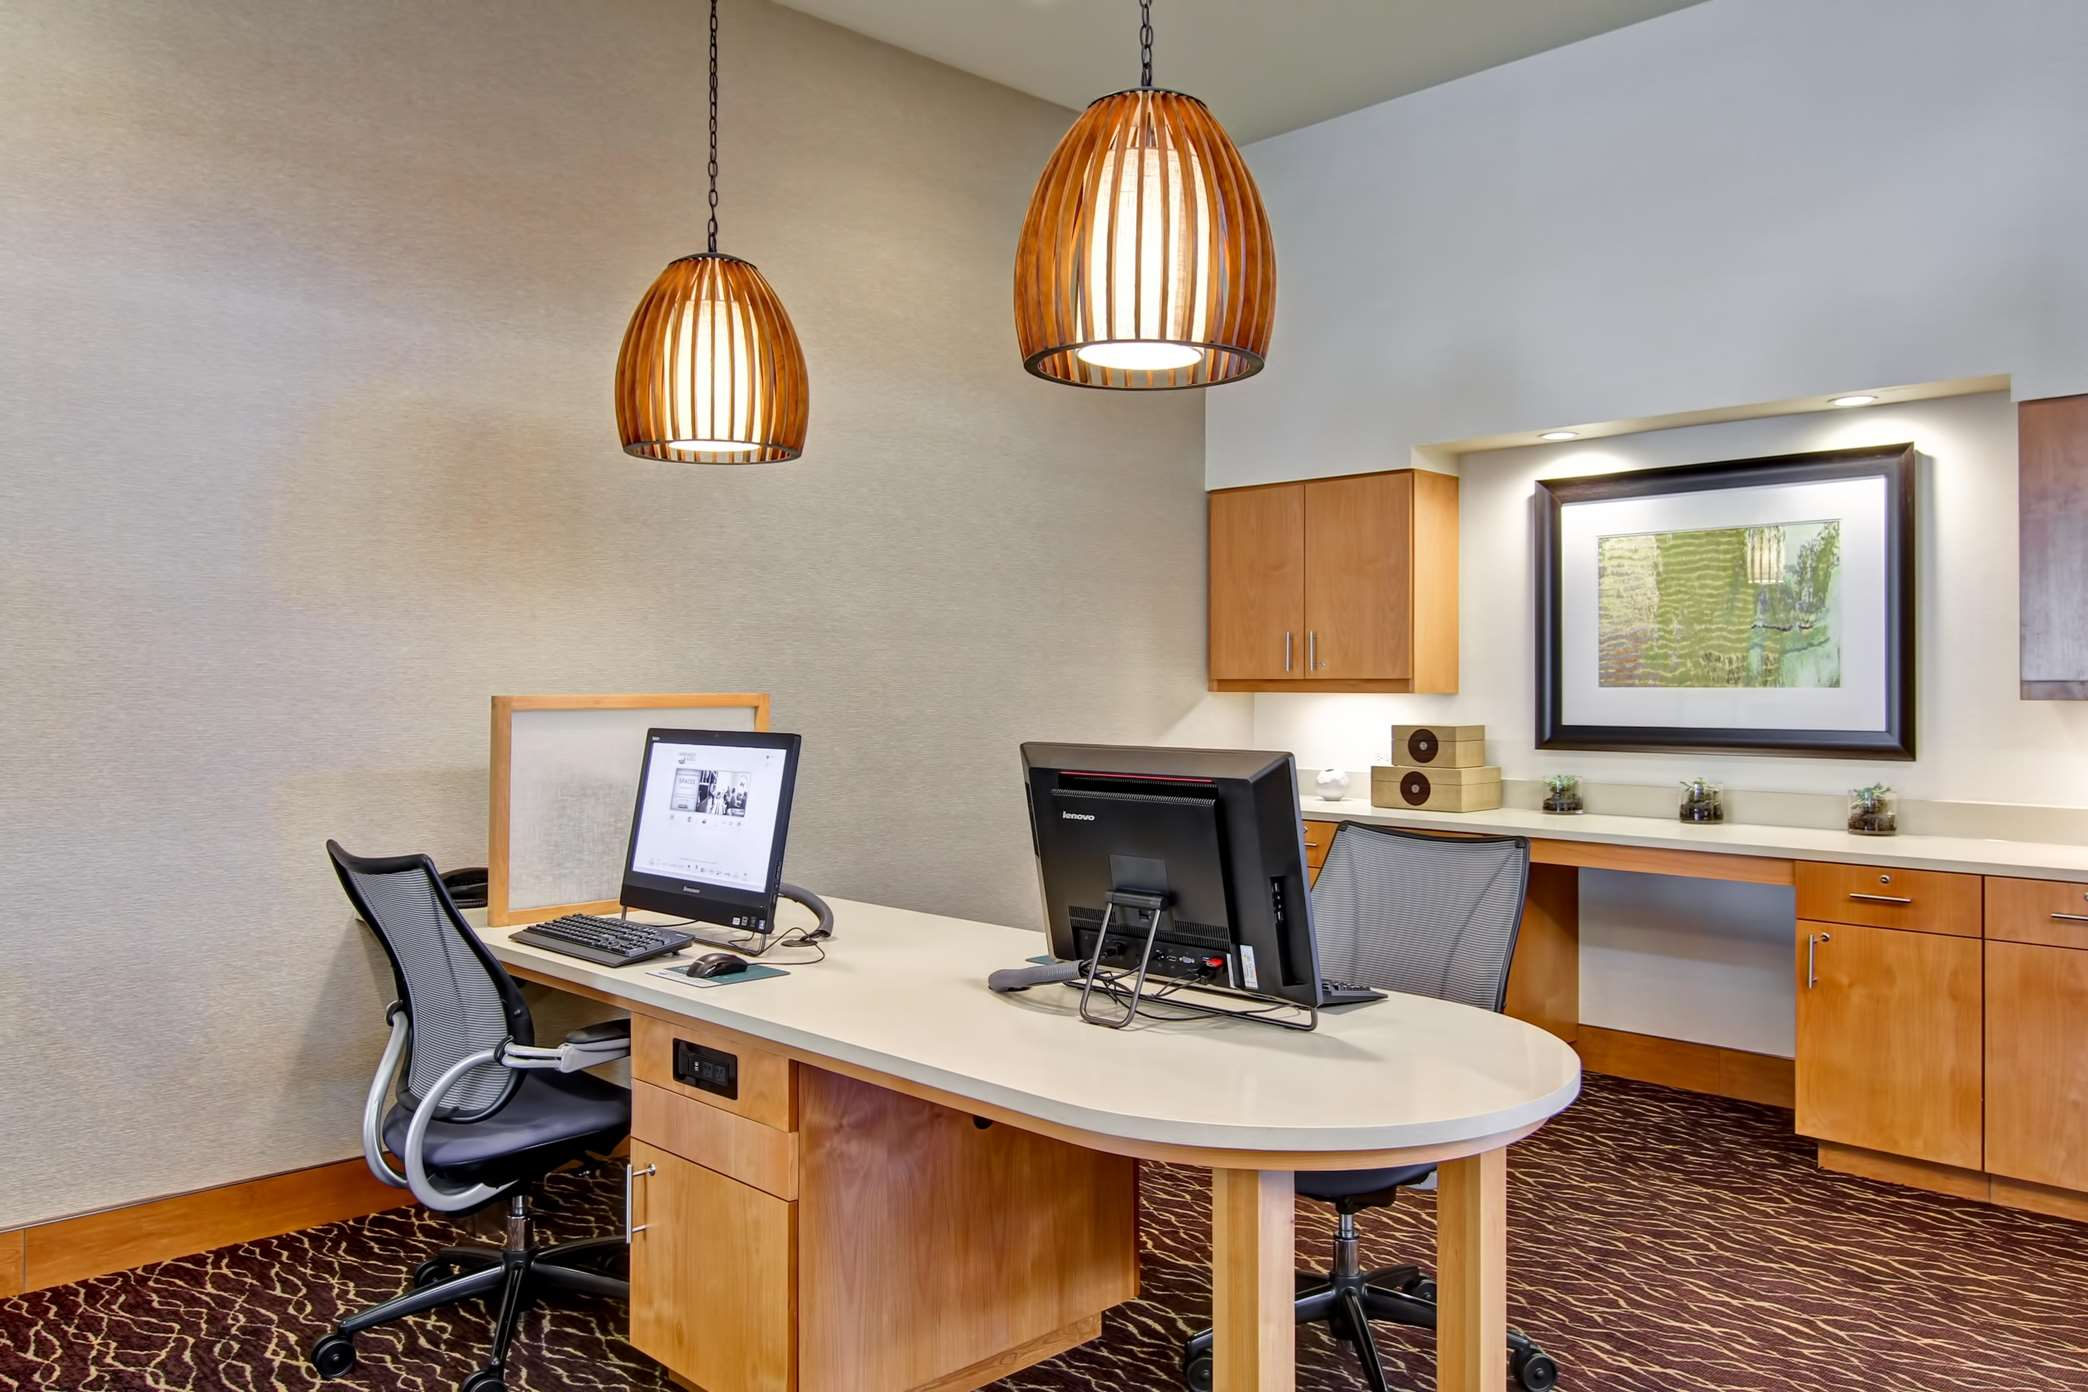 Homewood Suites by Hilton Seattle-Issaquah image 11